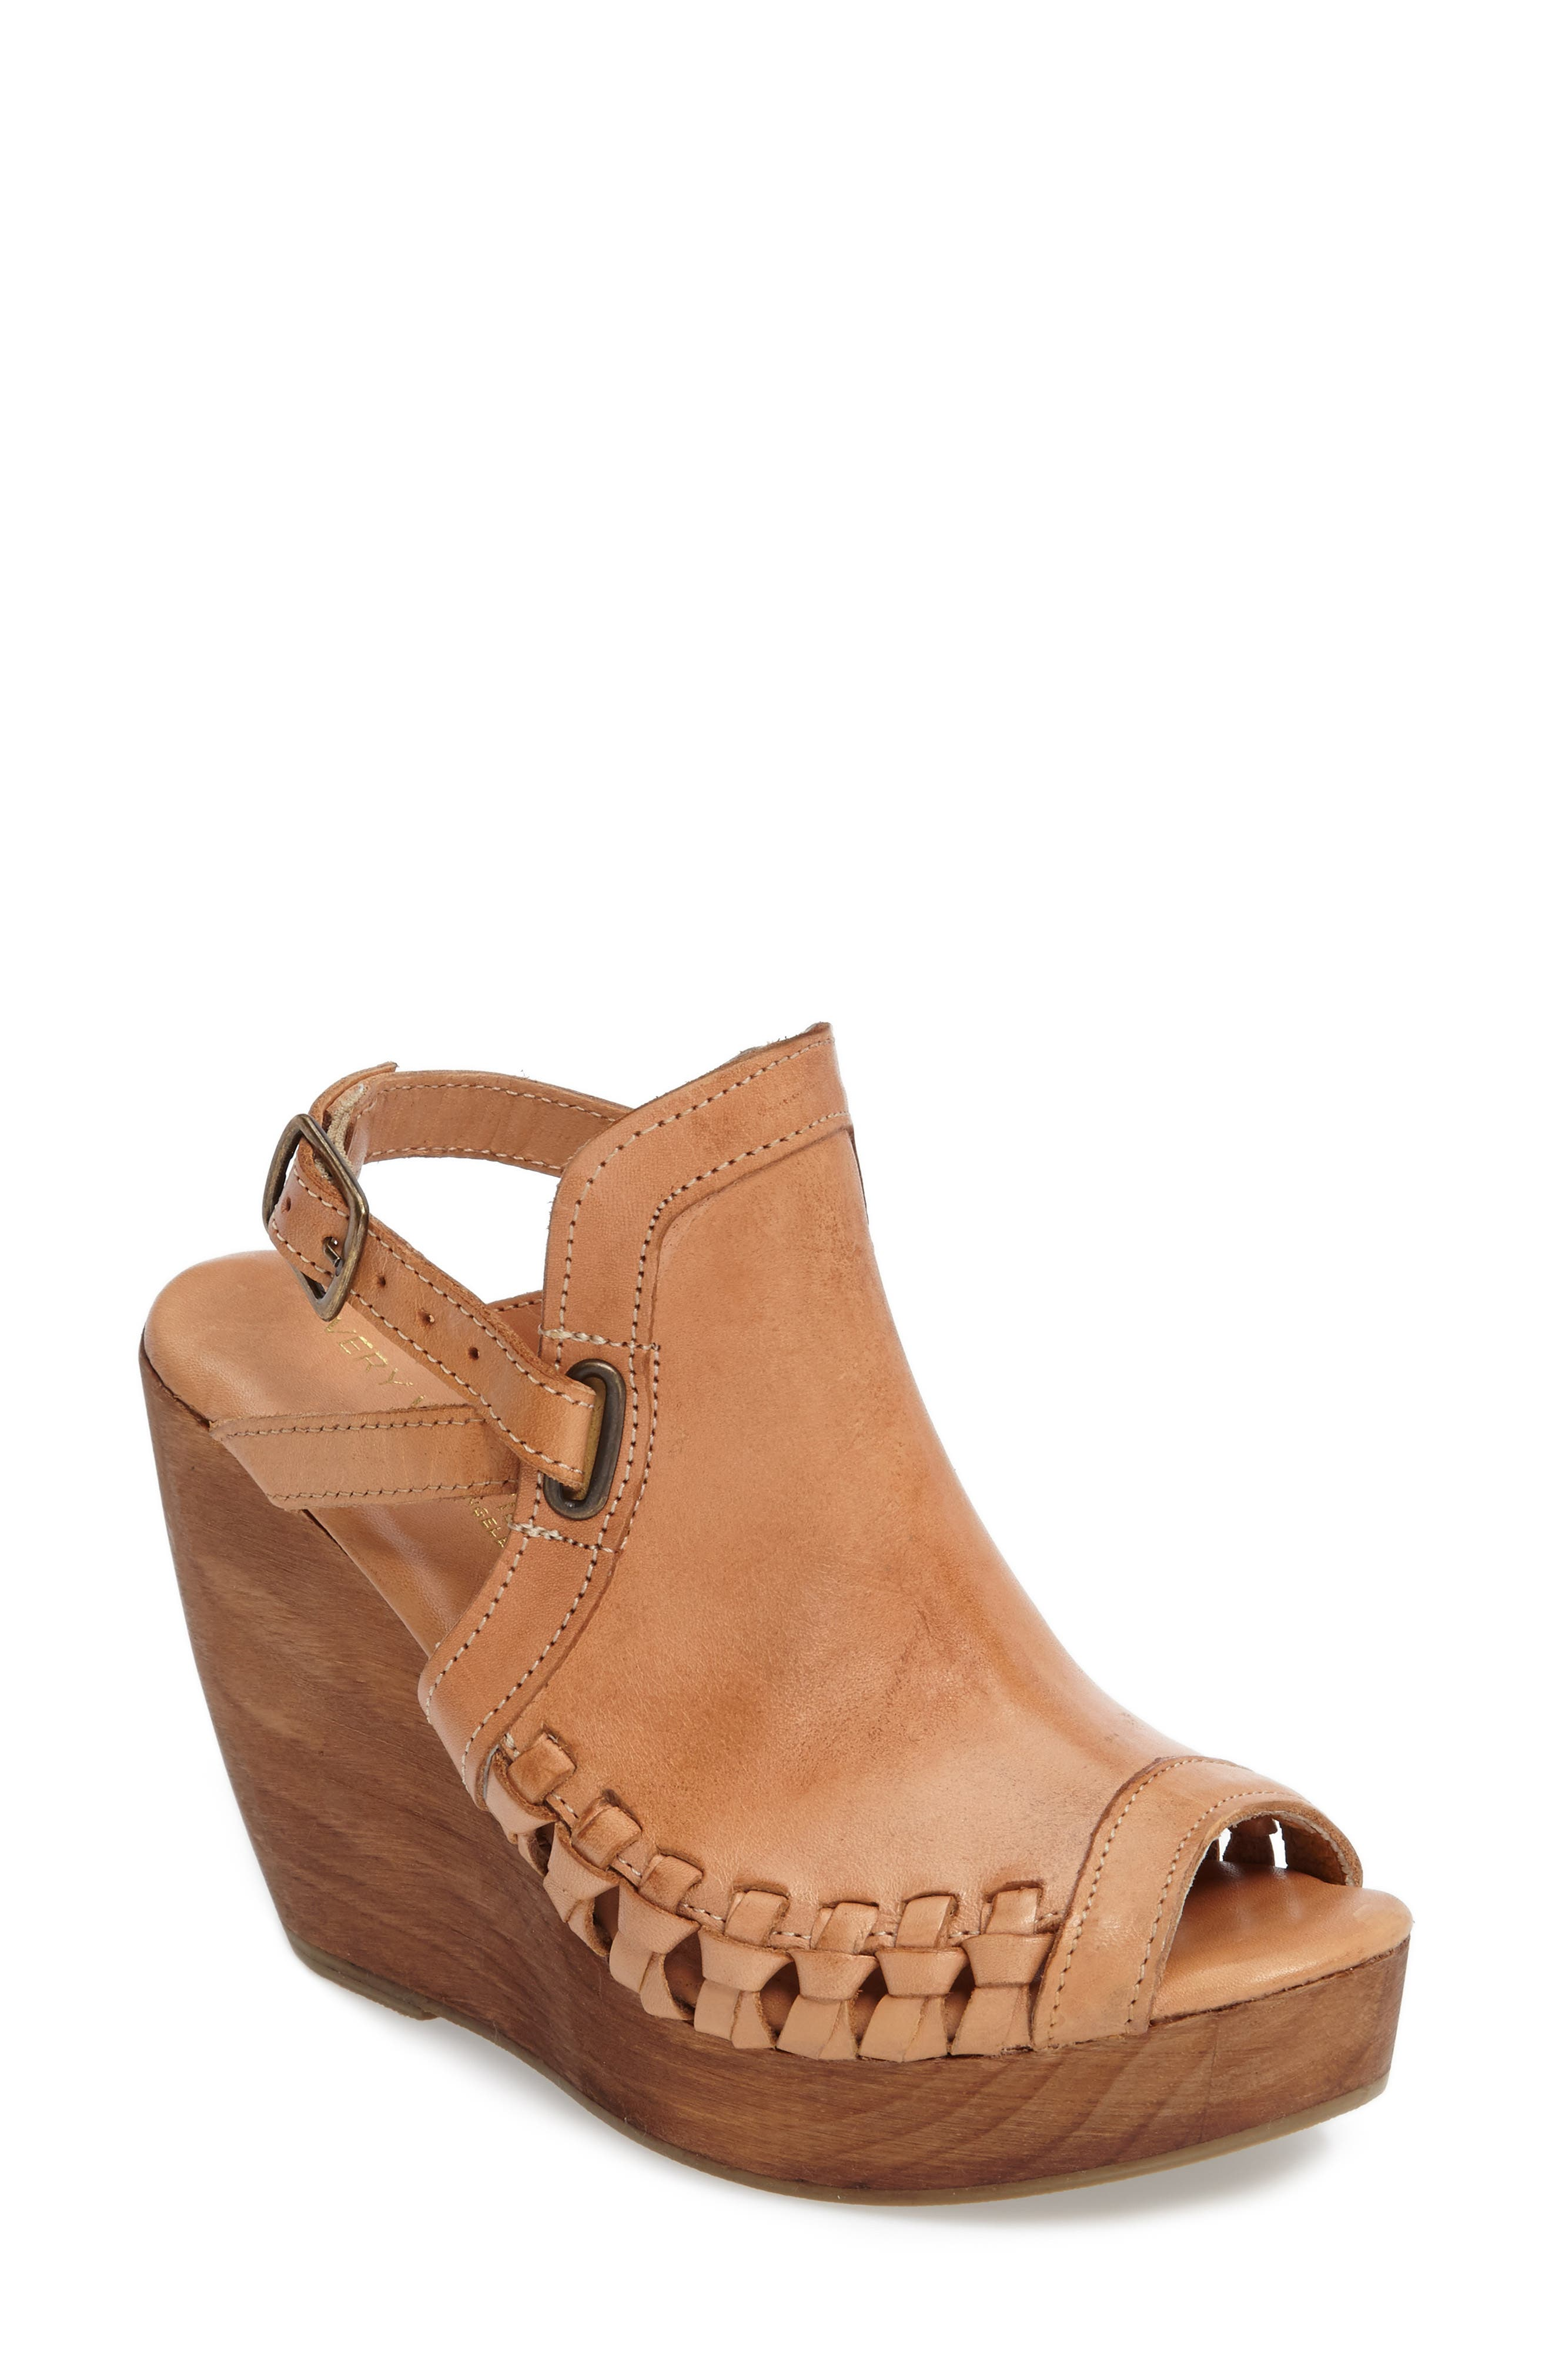 Alternate Image 1 Selected - Very Volatile Carry Wedge Sandal (Women)